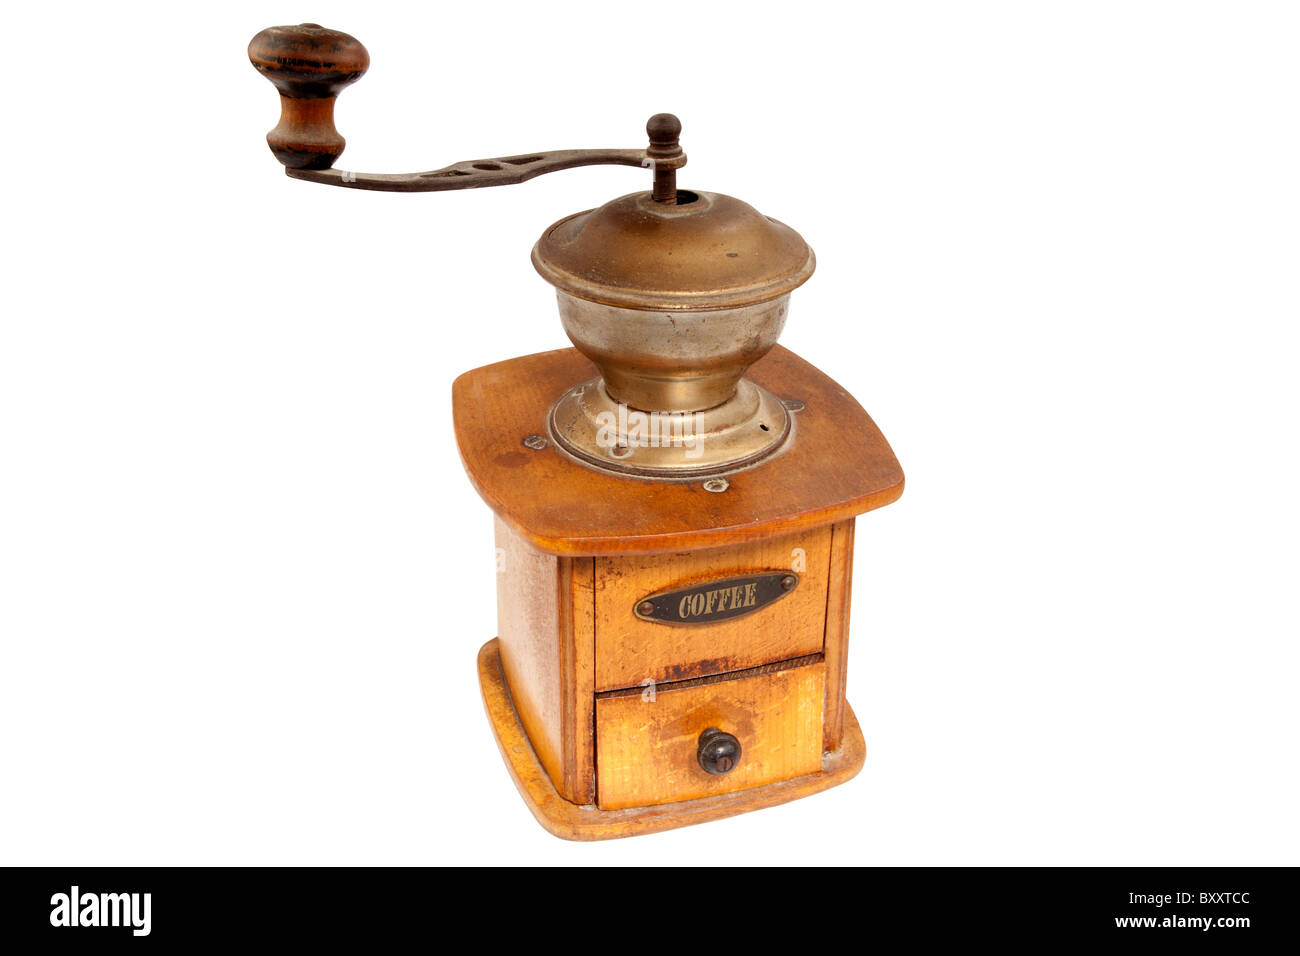 Antique coffee mill - Stock Image